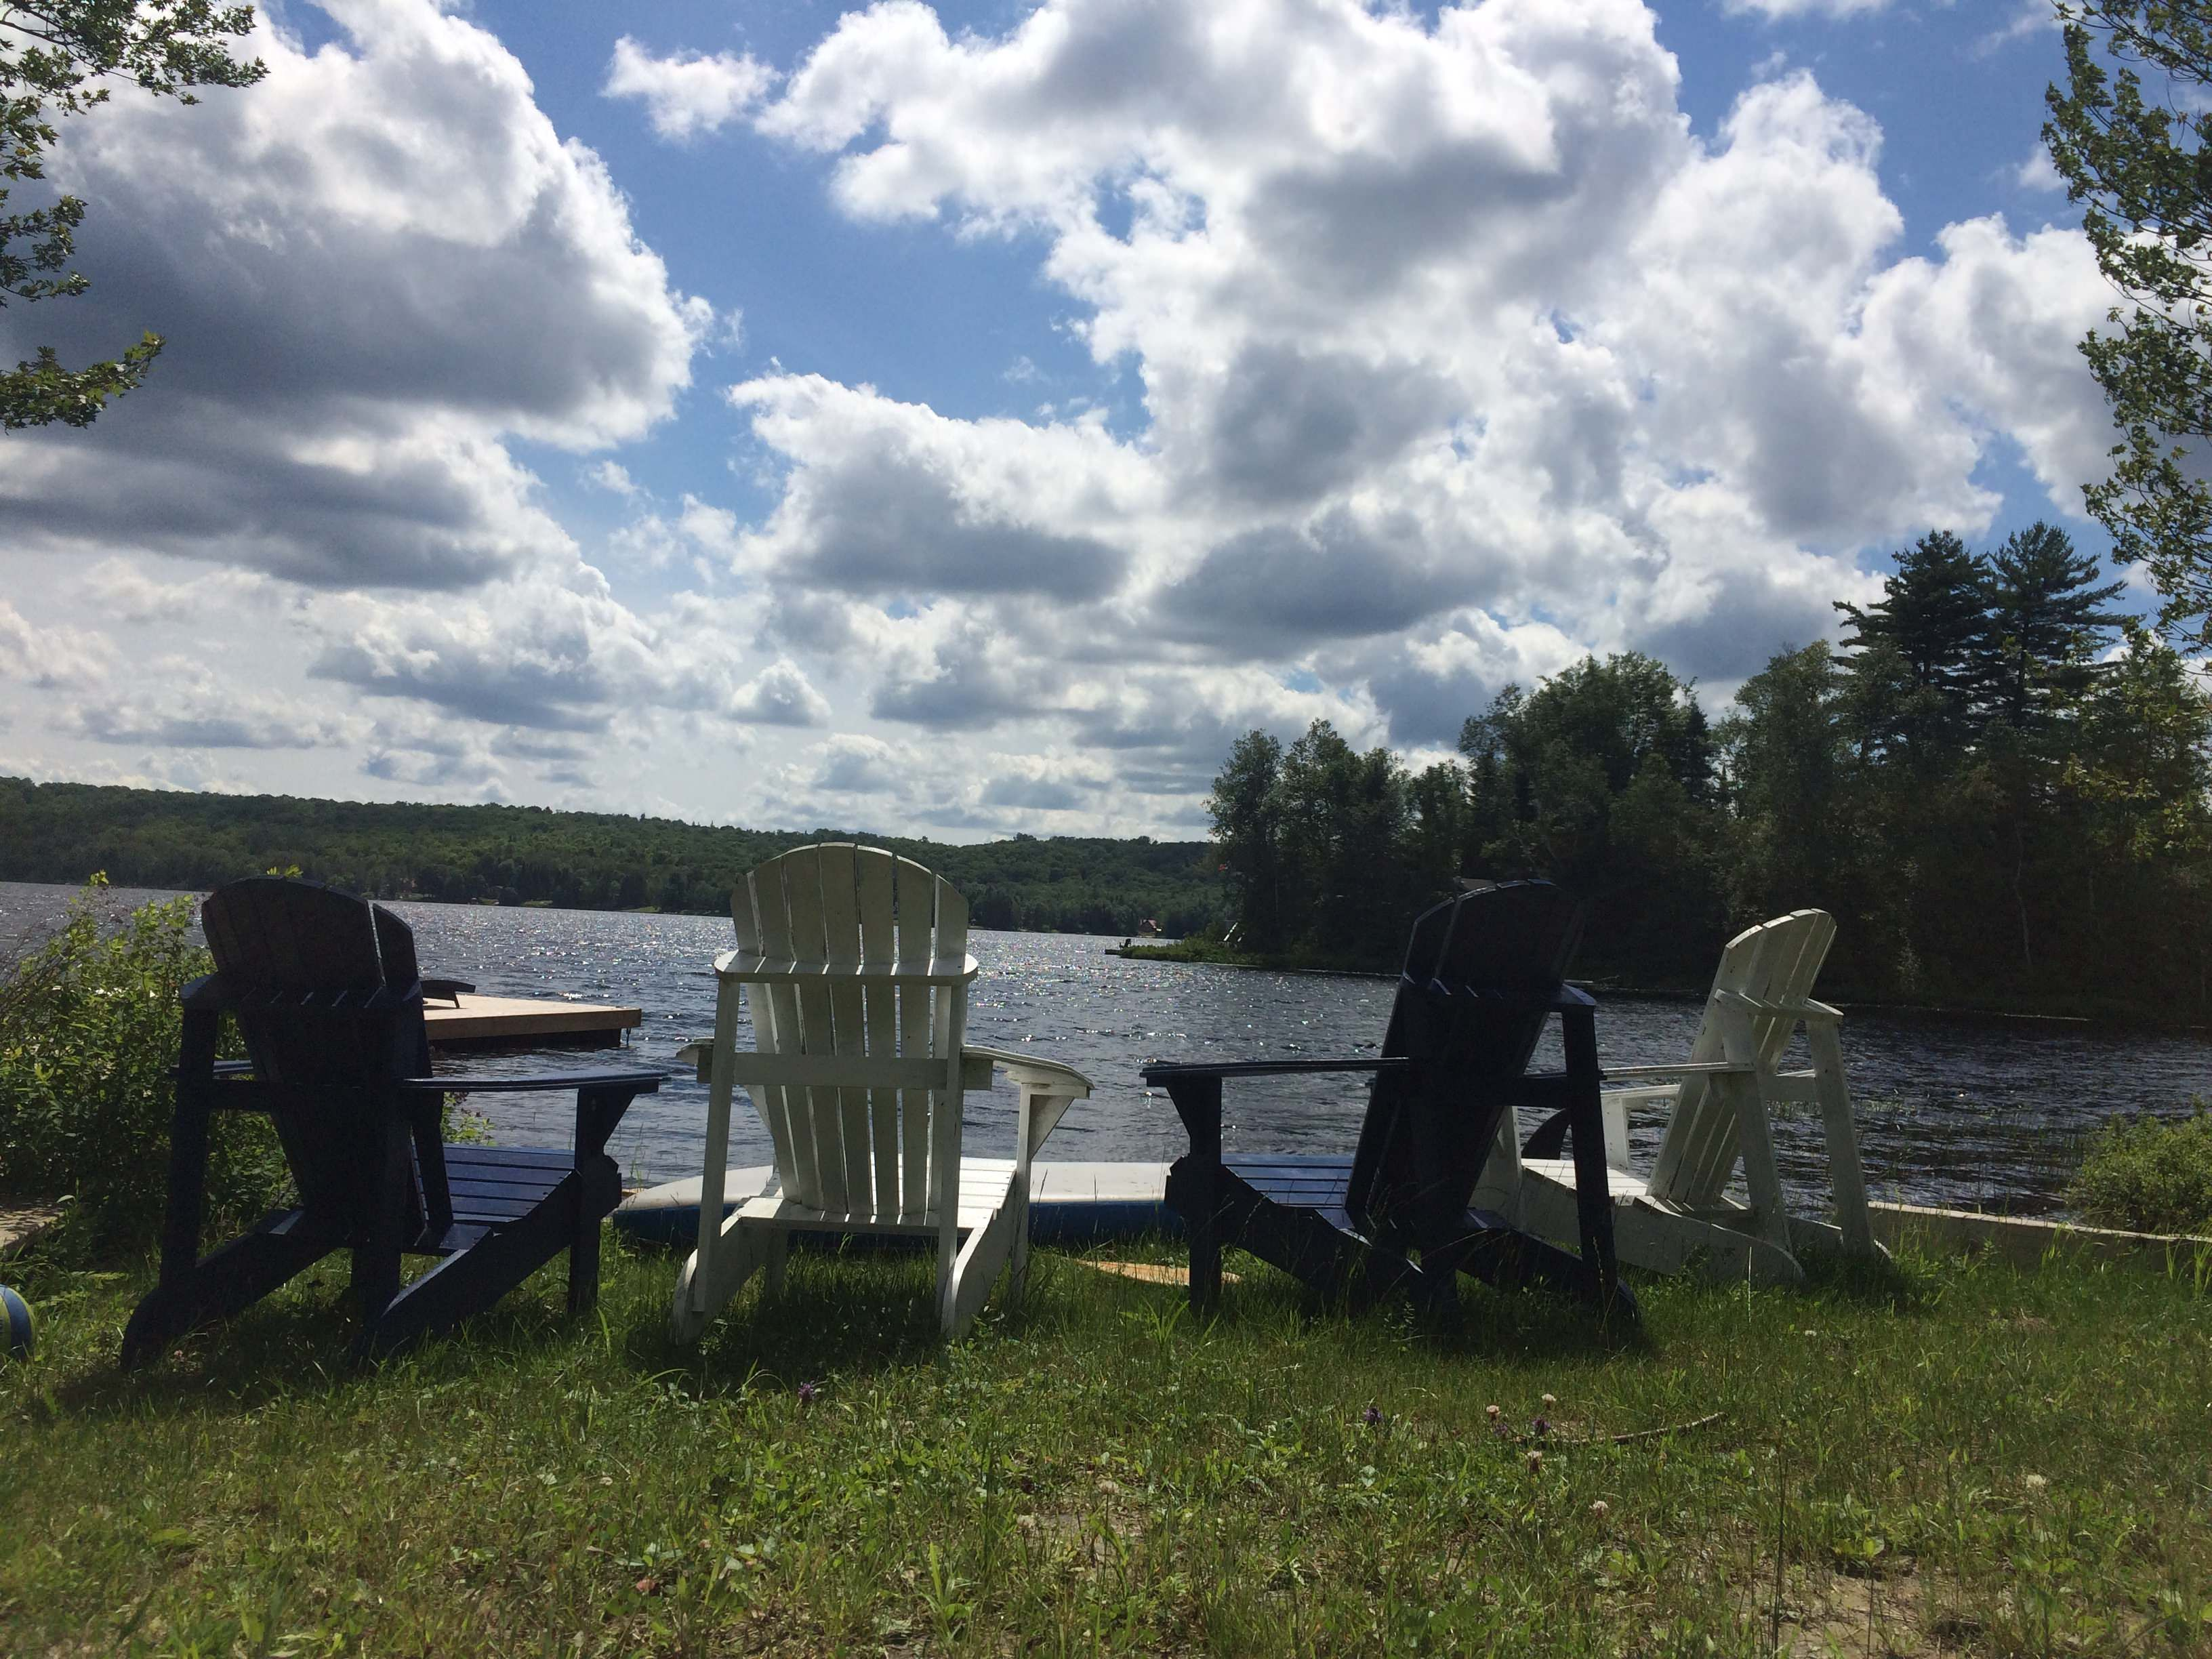 Muskoka Chairs By The Lake 3264 X 2448 Wallpapers Wallpaper